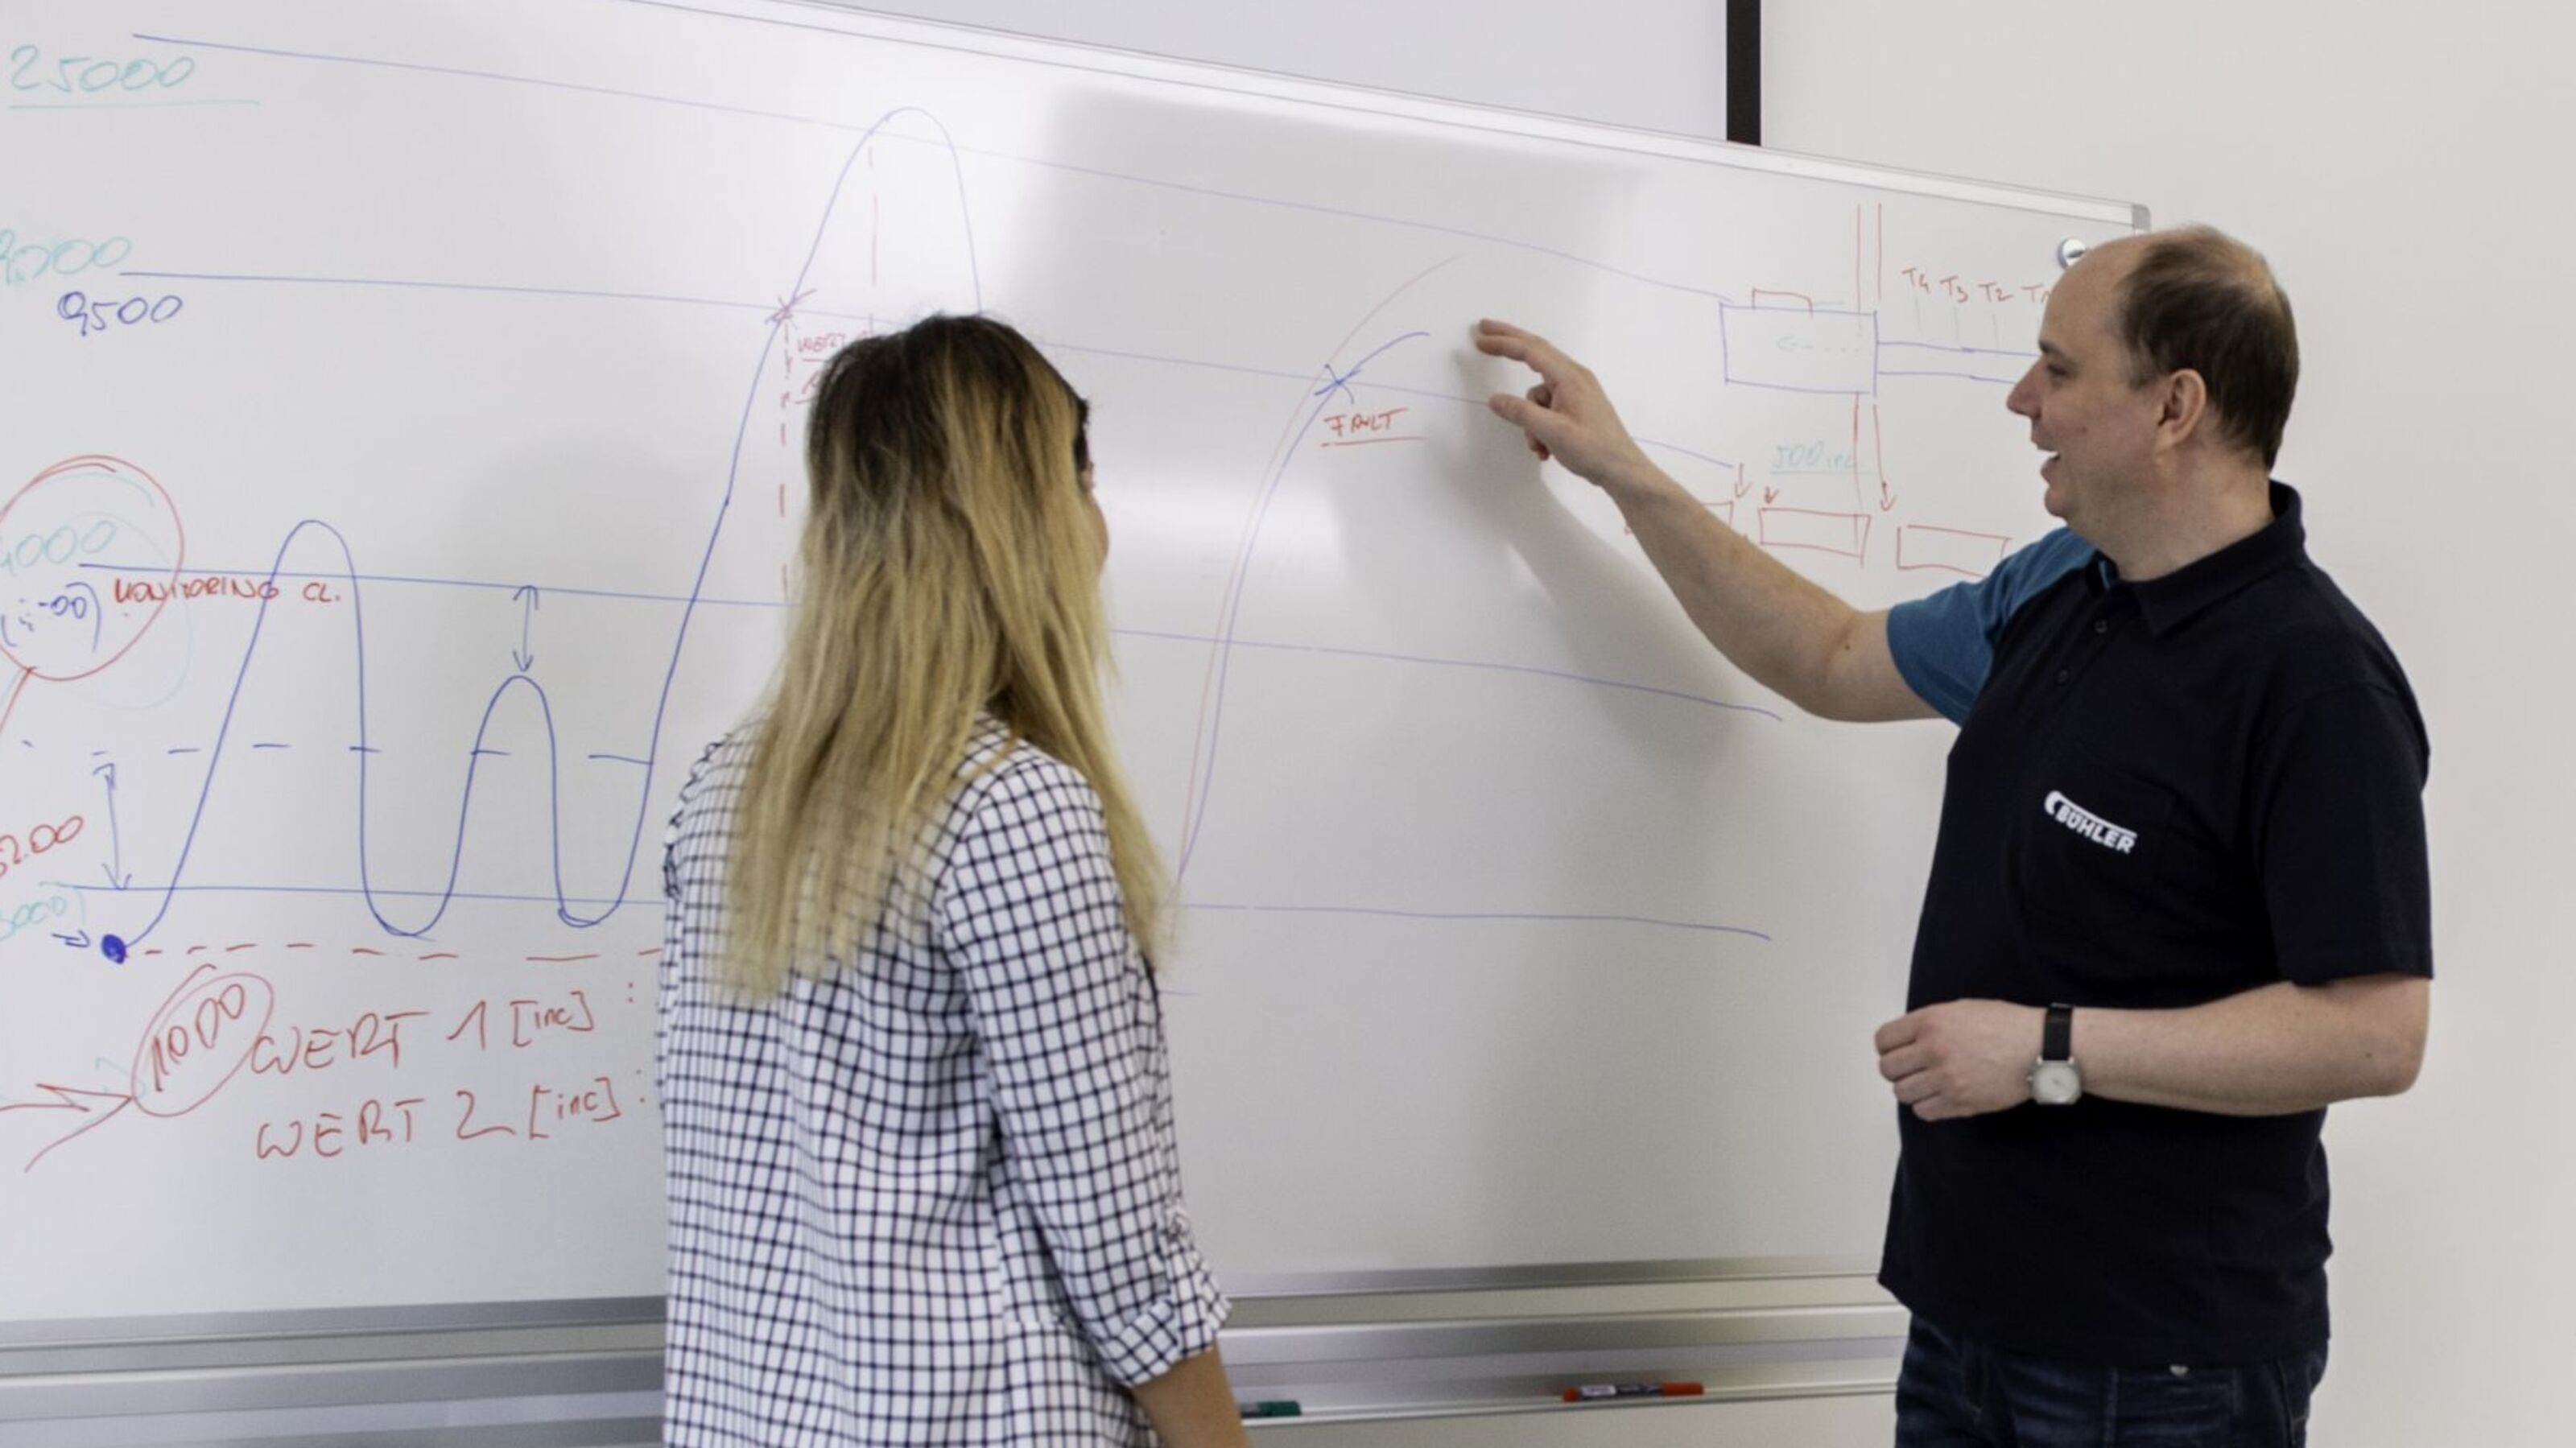 Bühler trainer teaching a customer in a well-equipped classroom.